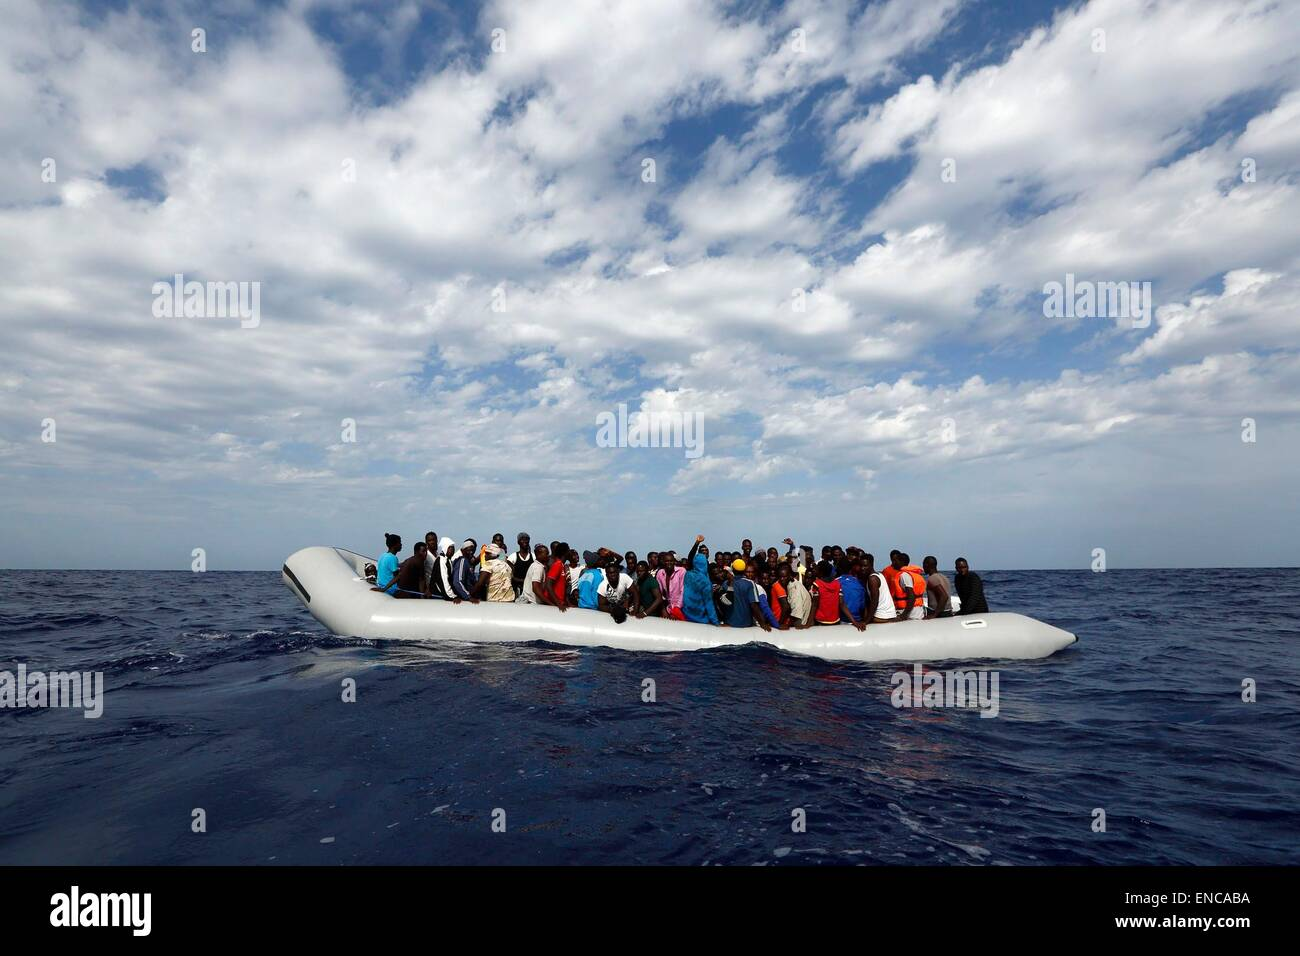 HANDOUT - A handout picture made available on 02 May 2015 shows 105 refugees on a rubber raft waiting to board the - Stock Image